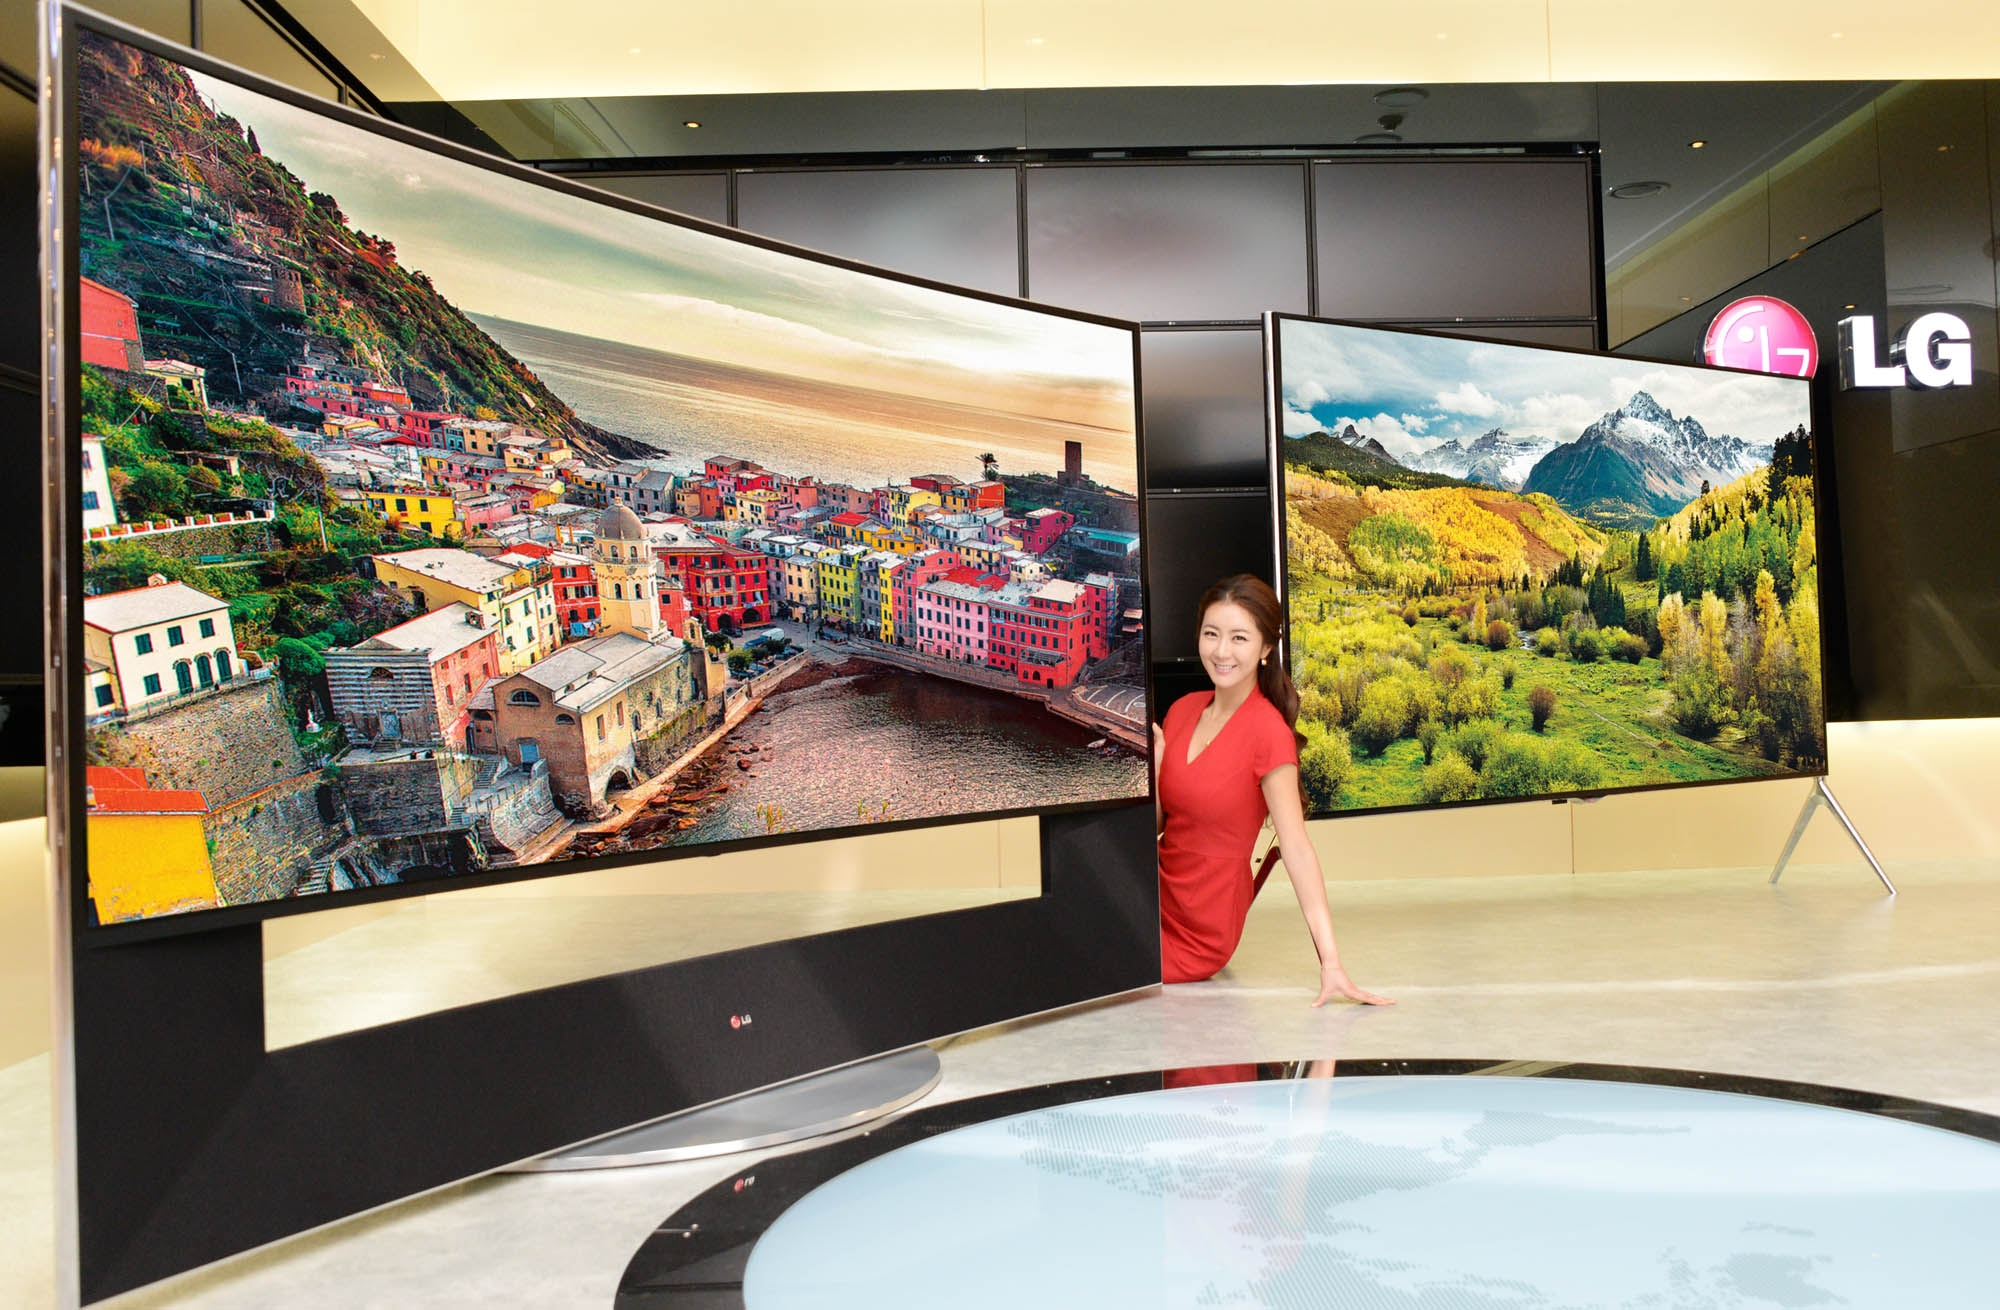 LG Electronics showed off its Curved Ultra HD OLED TV with a 105-inch screen, a 21:9 aspect ratio, and a 5120x2160 5K resolution at CES 2014.